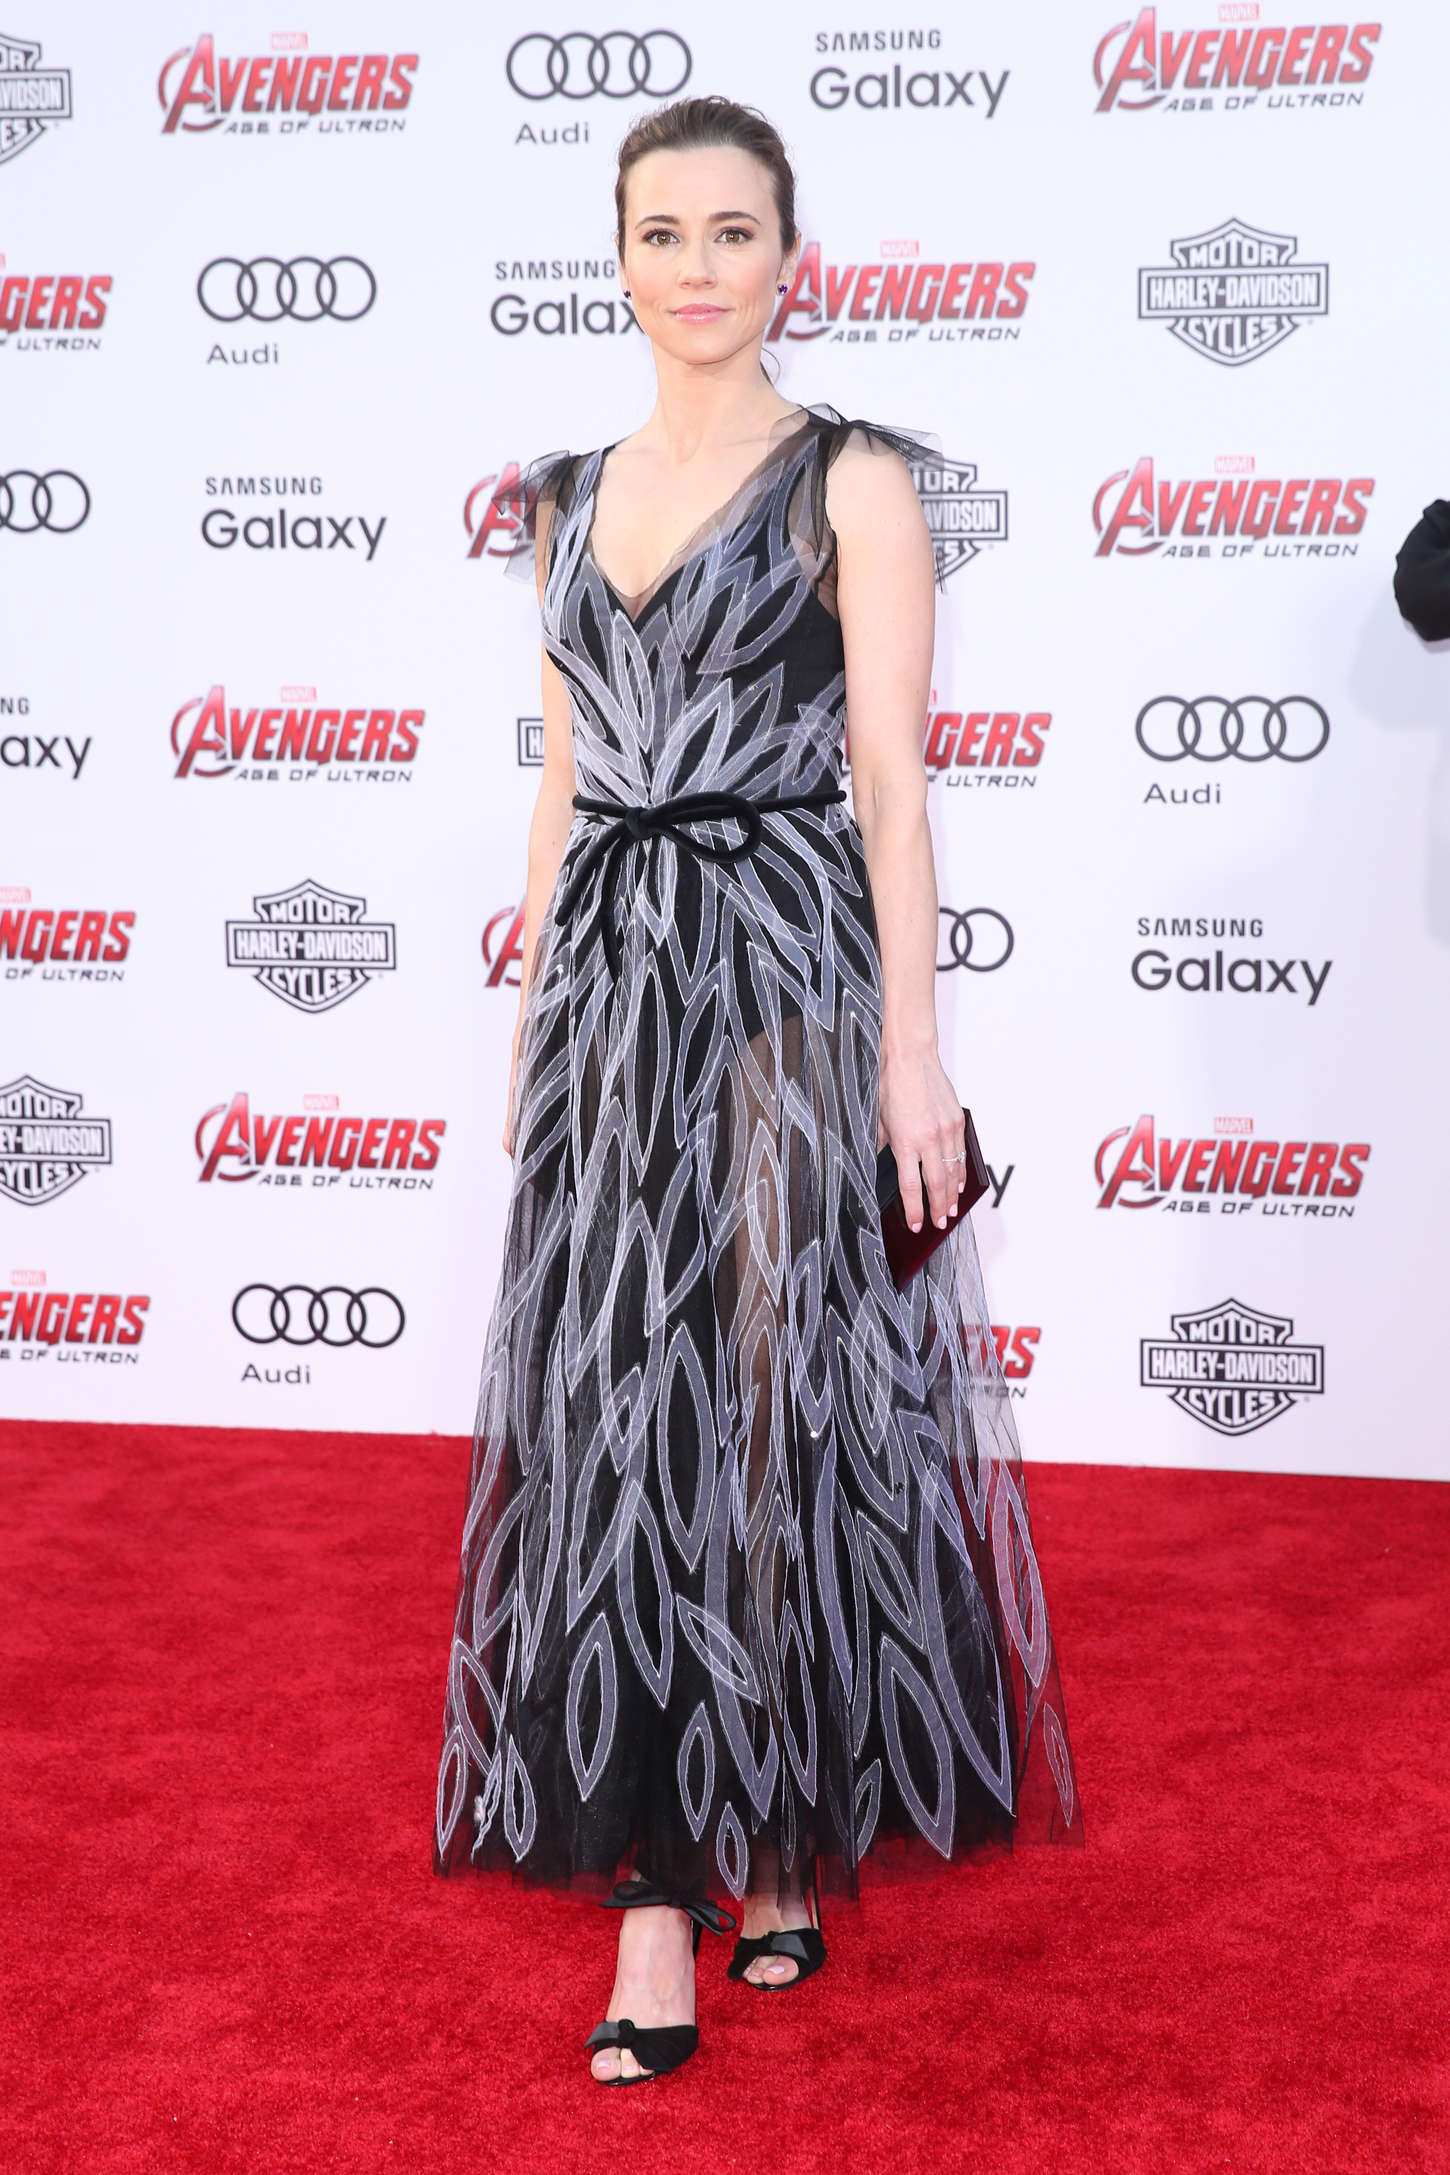 Linda Cardellini Avengers Age Of Ultron Premiere in Hollywood